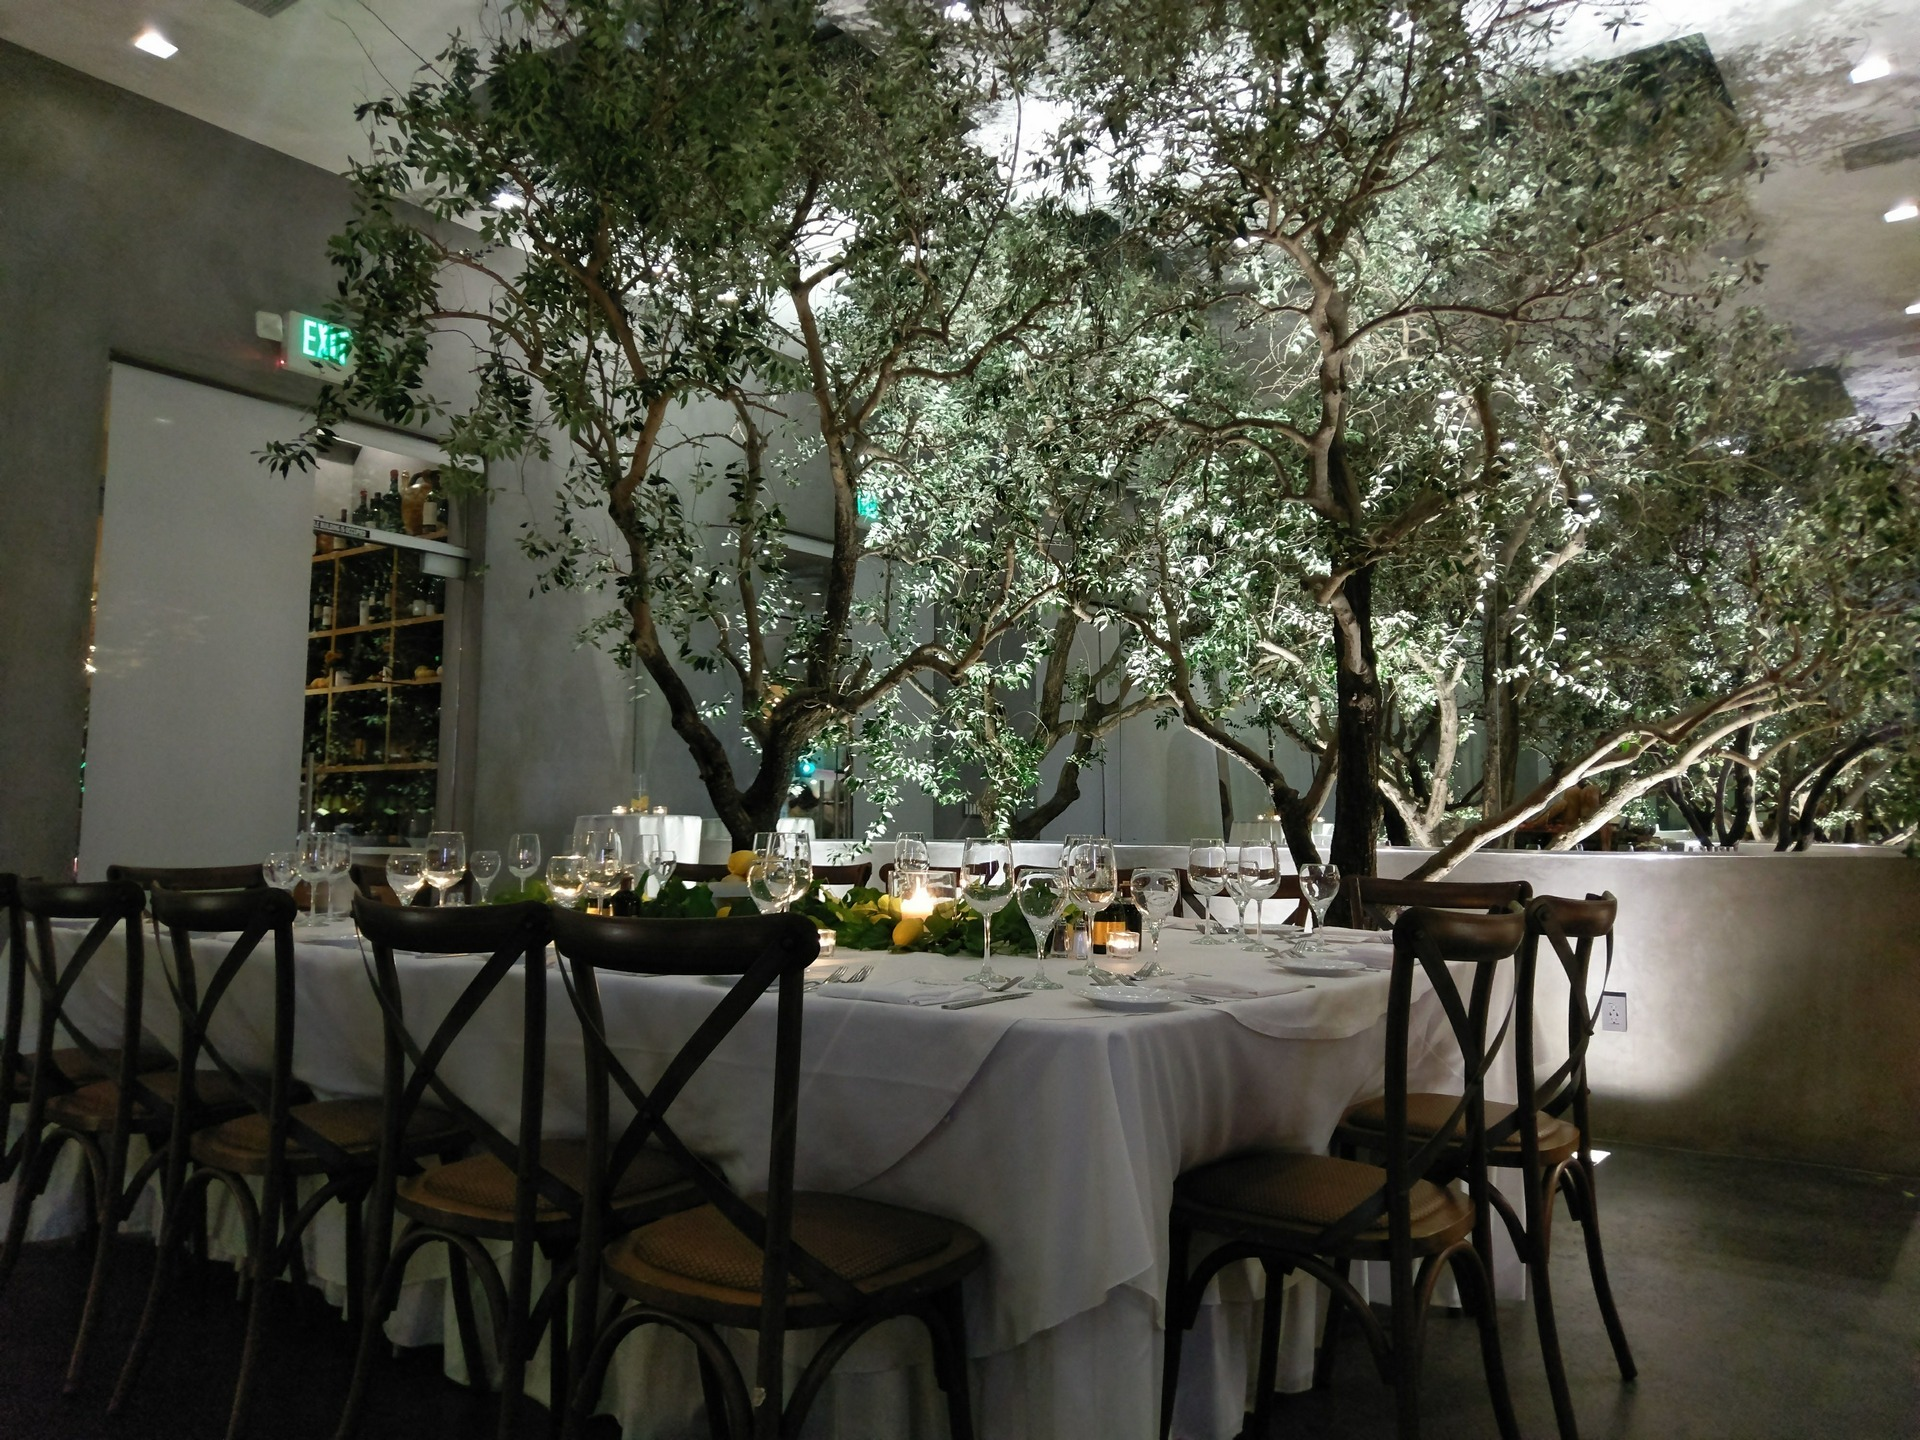 Il Pastaio Restaurant | Private Dining Events-640390772